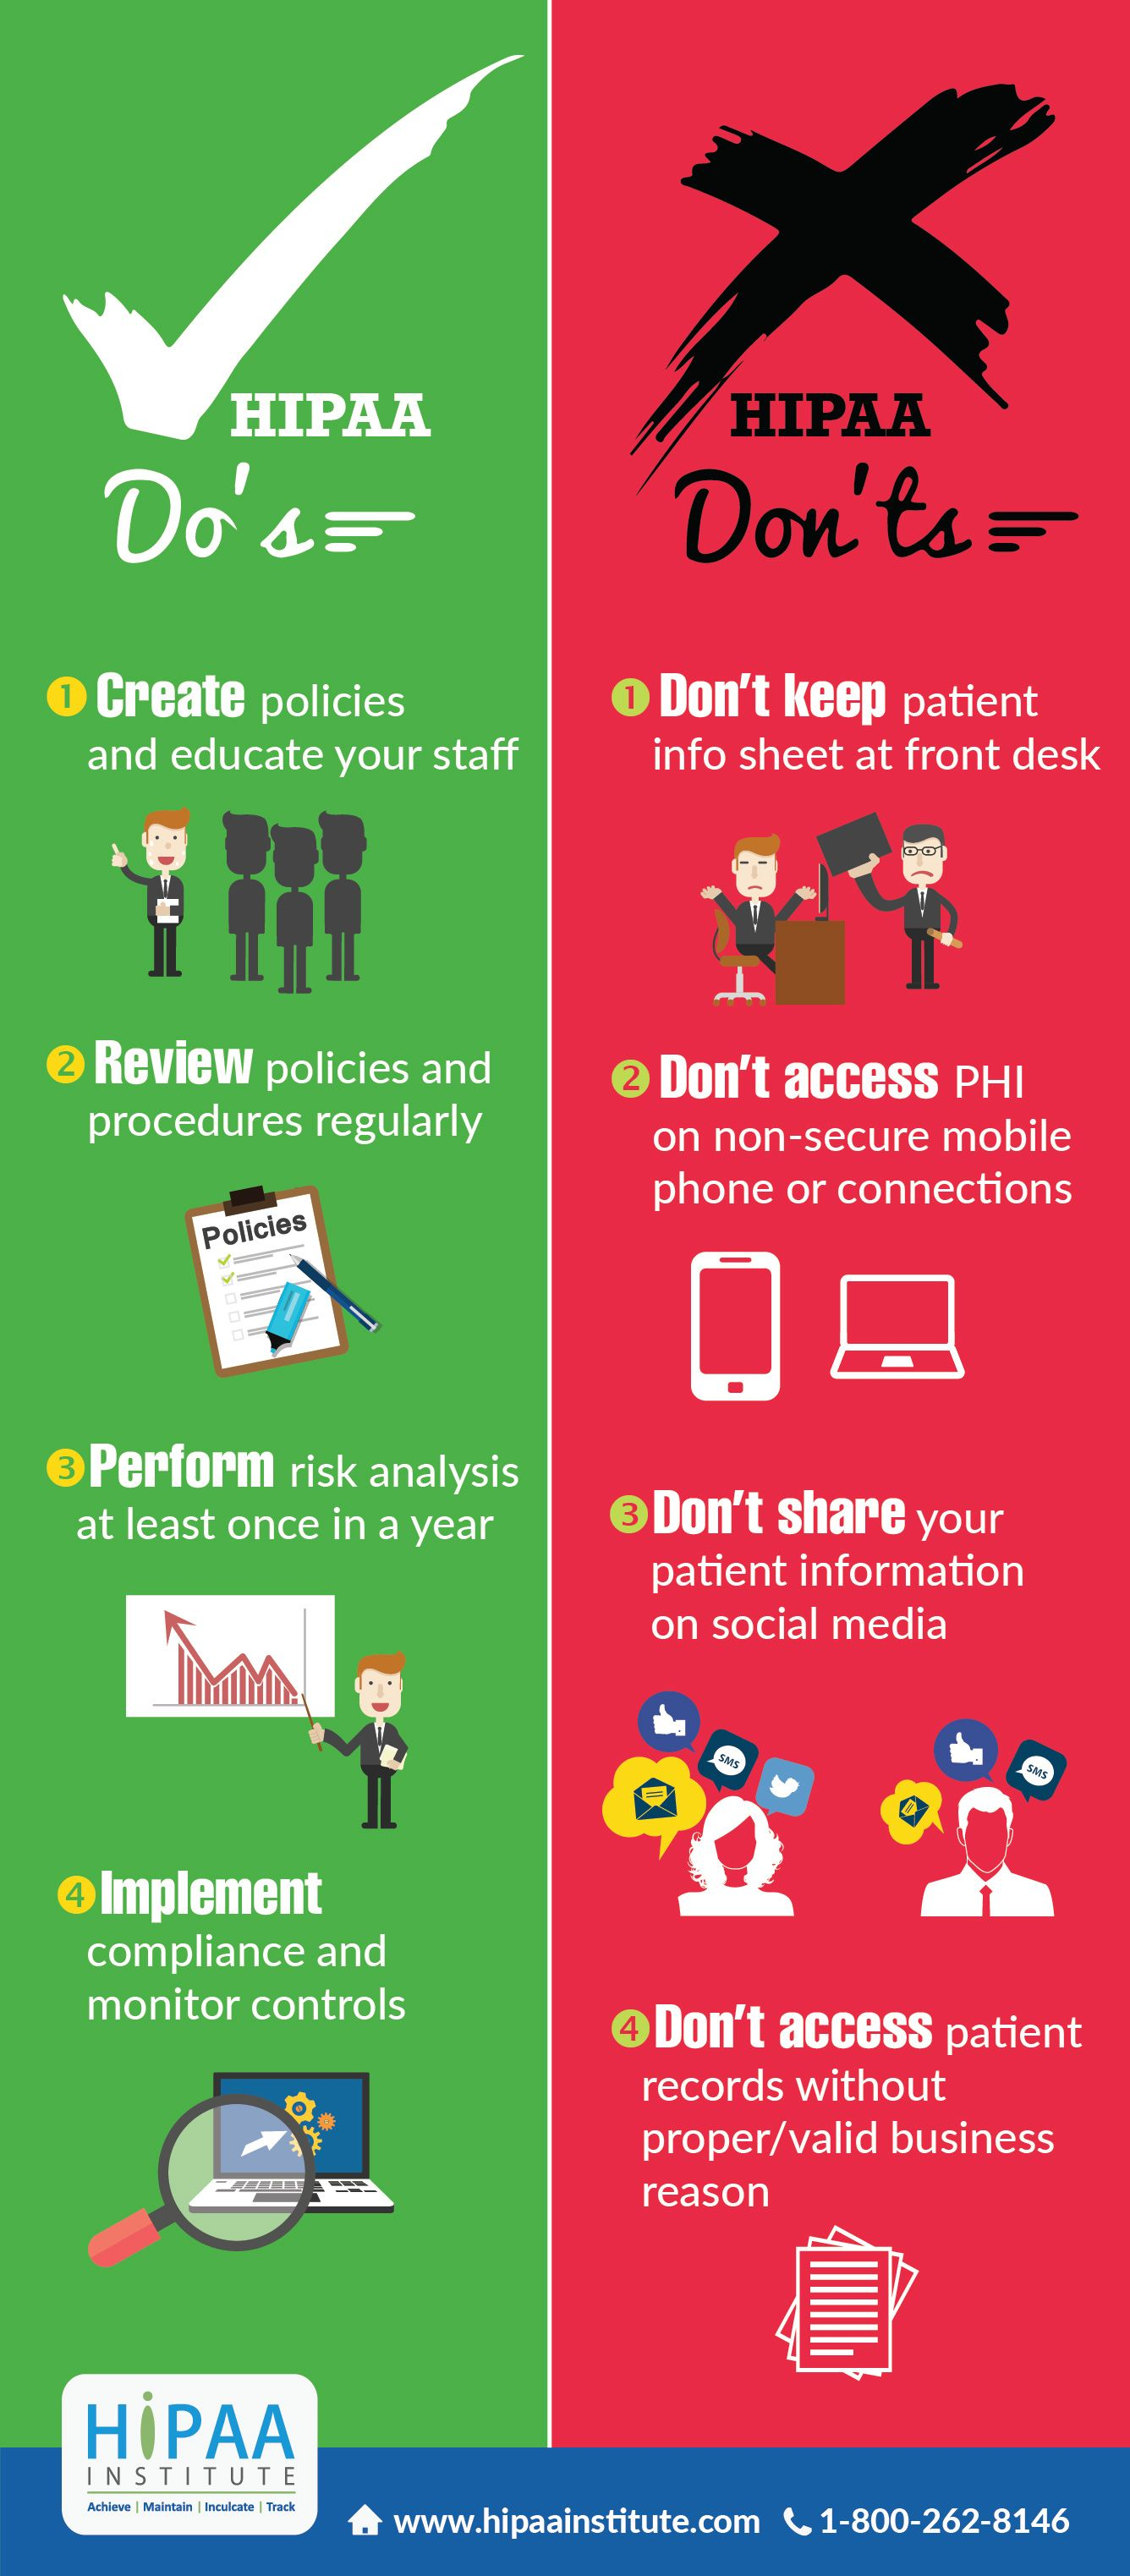 Here Are The DoS  DonTs Of Hipaa Compliance From The Hipaa